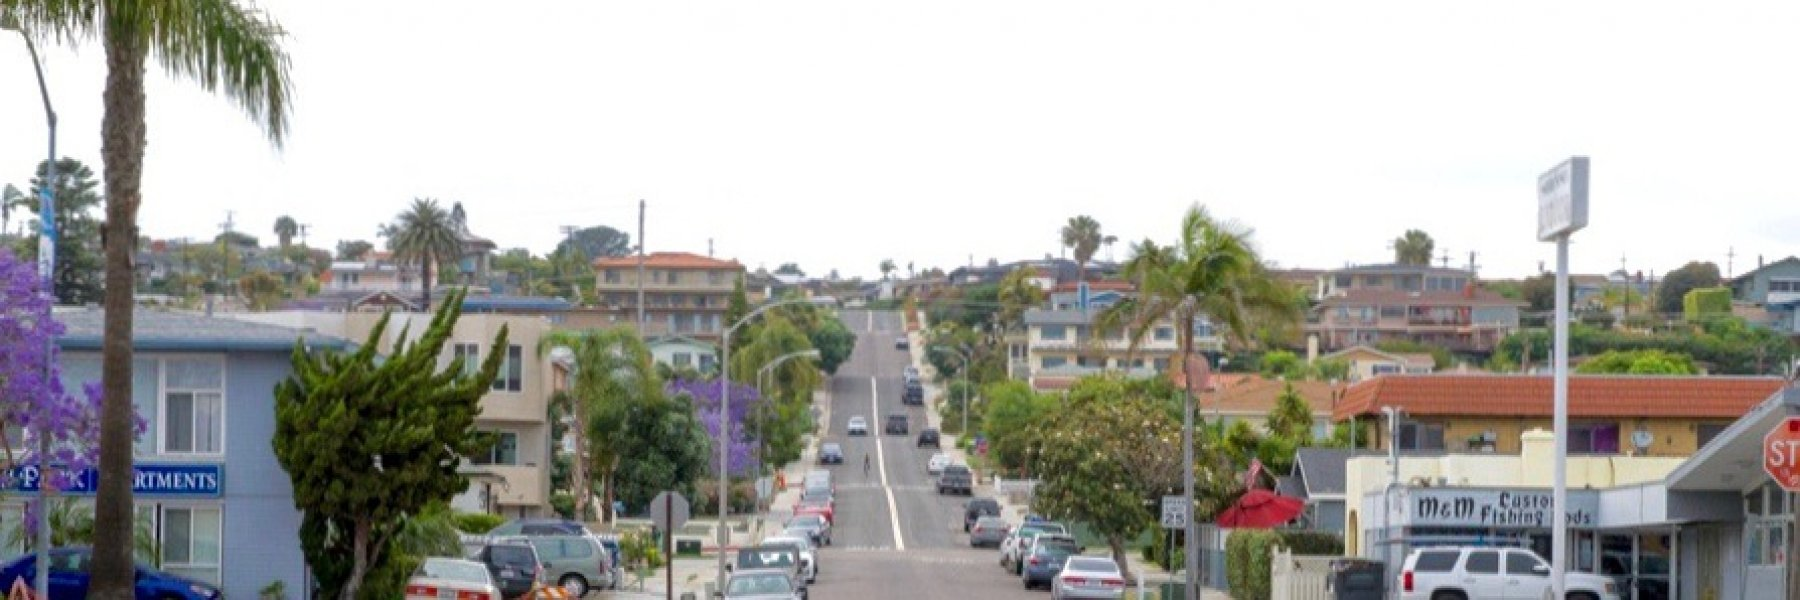 Roseville is a community of homes in San Diego